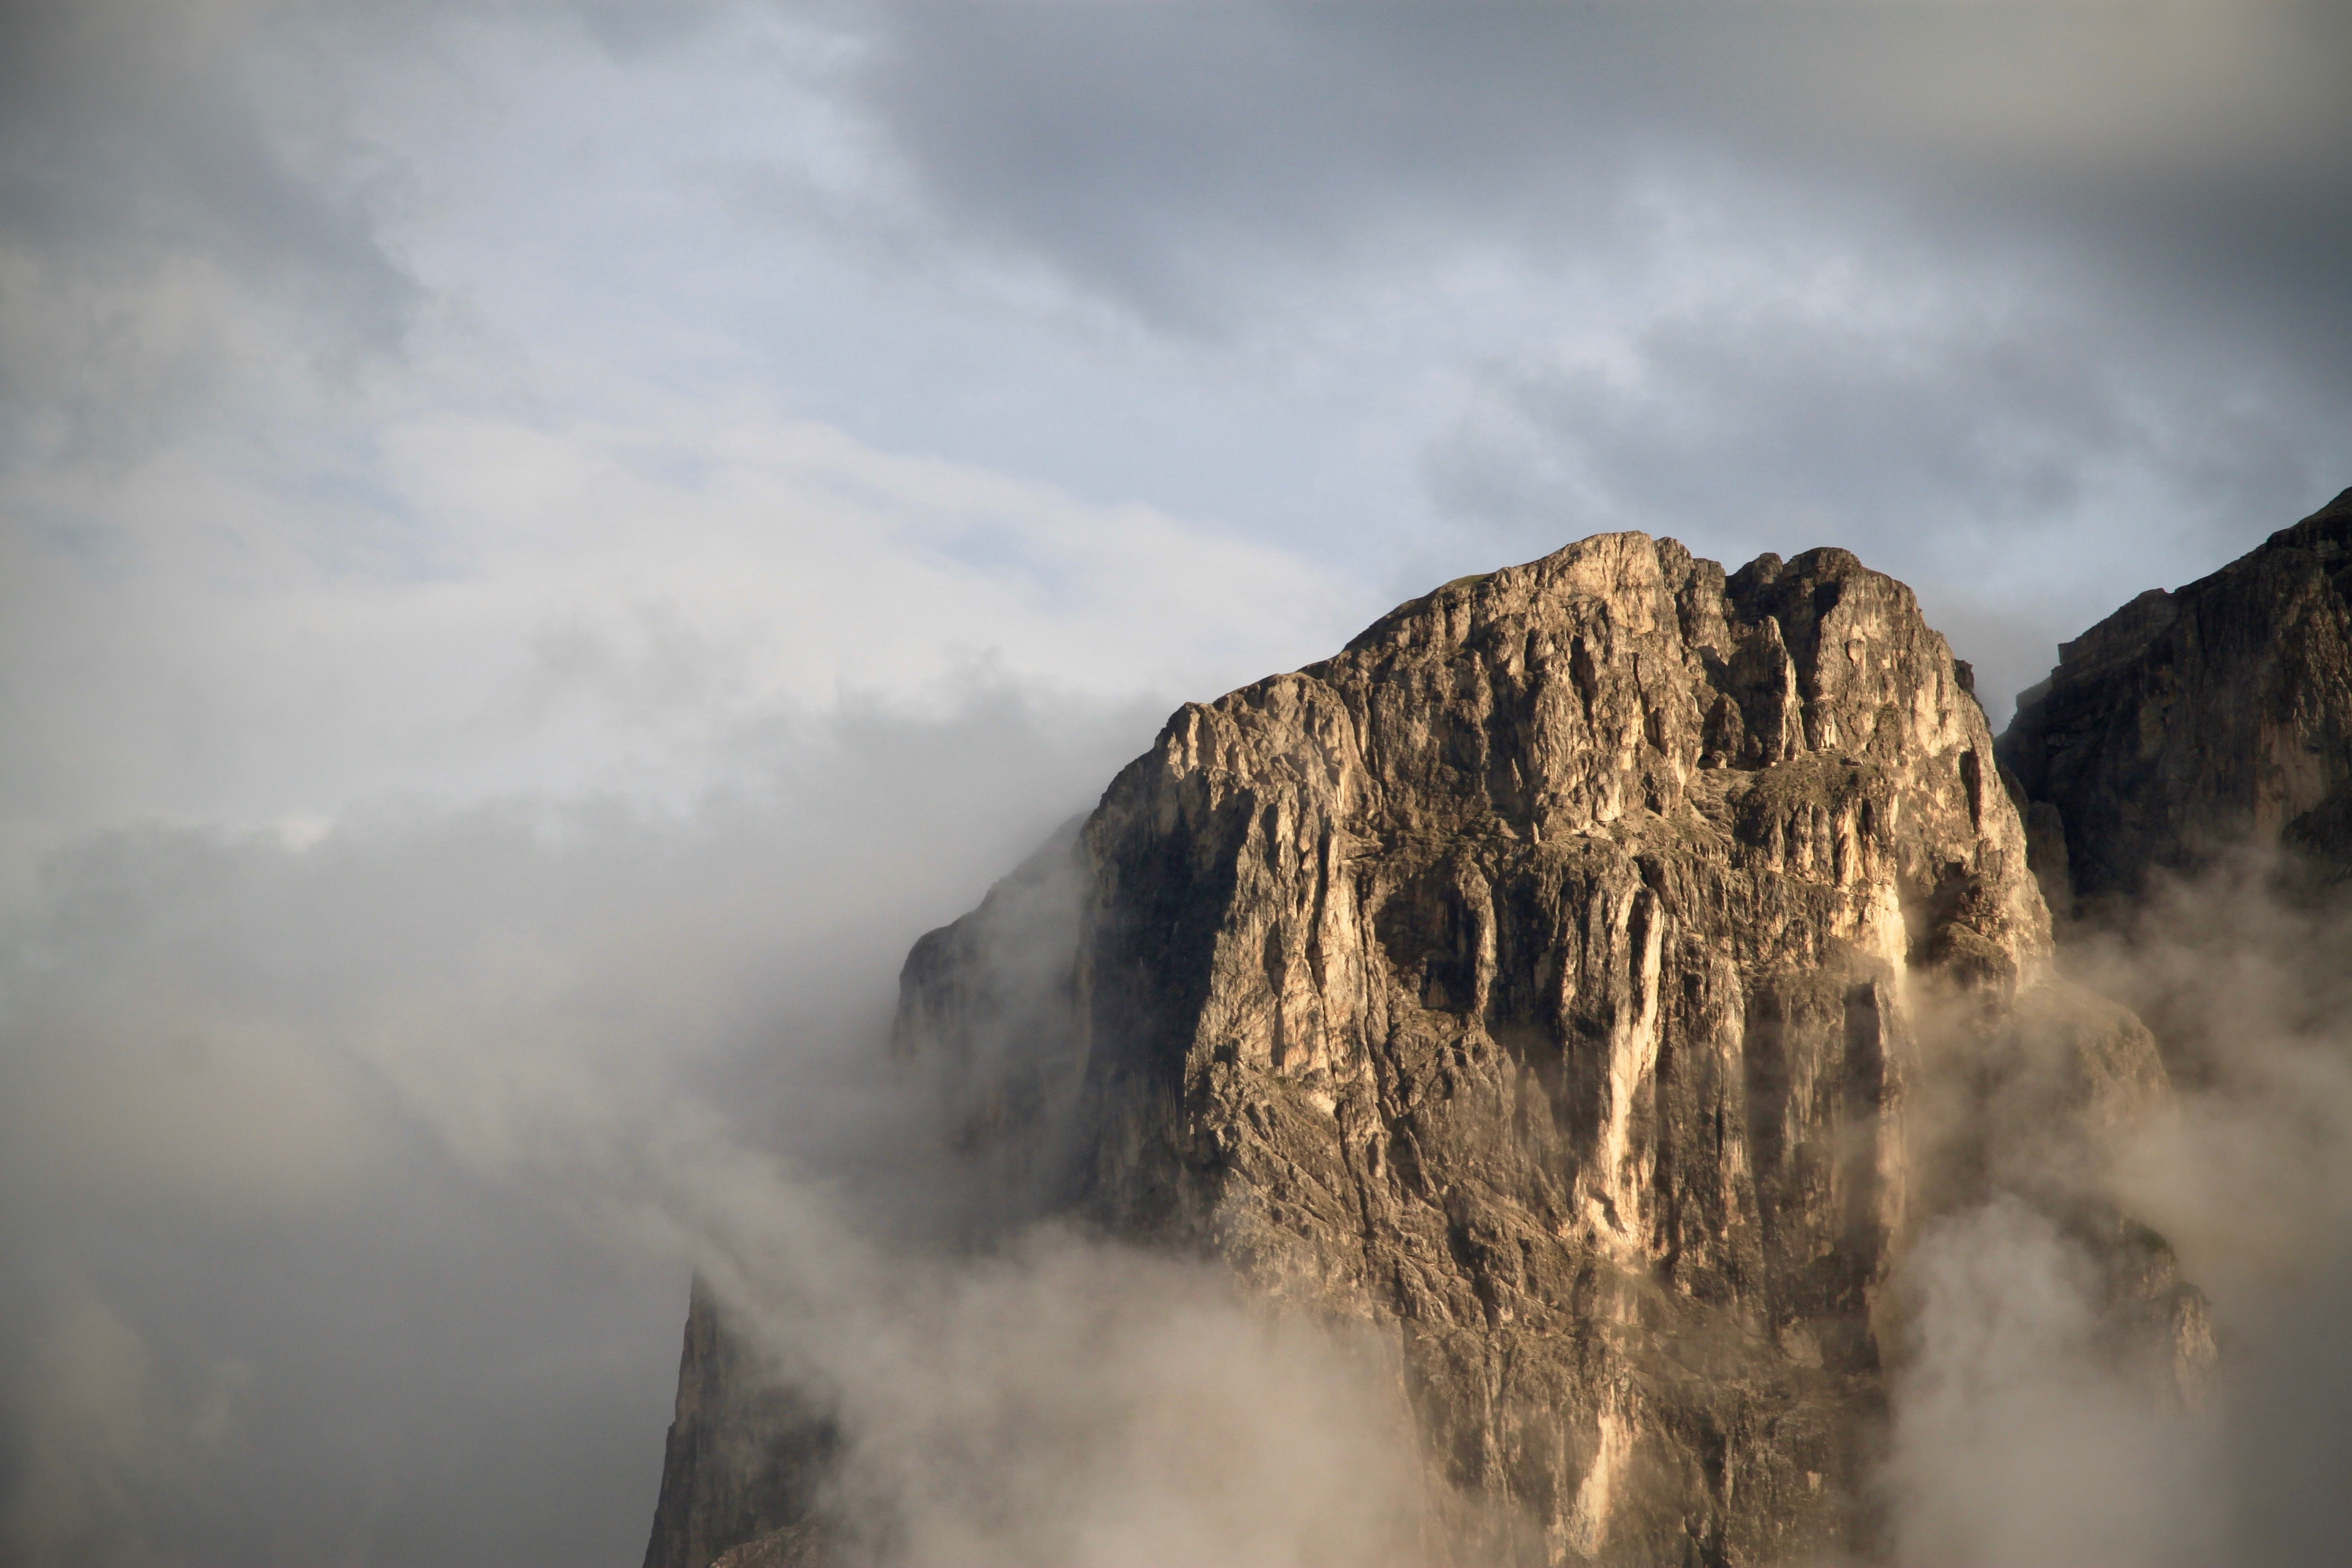 photo of gray rock formation covered in cloud